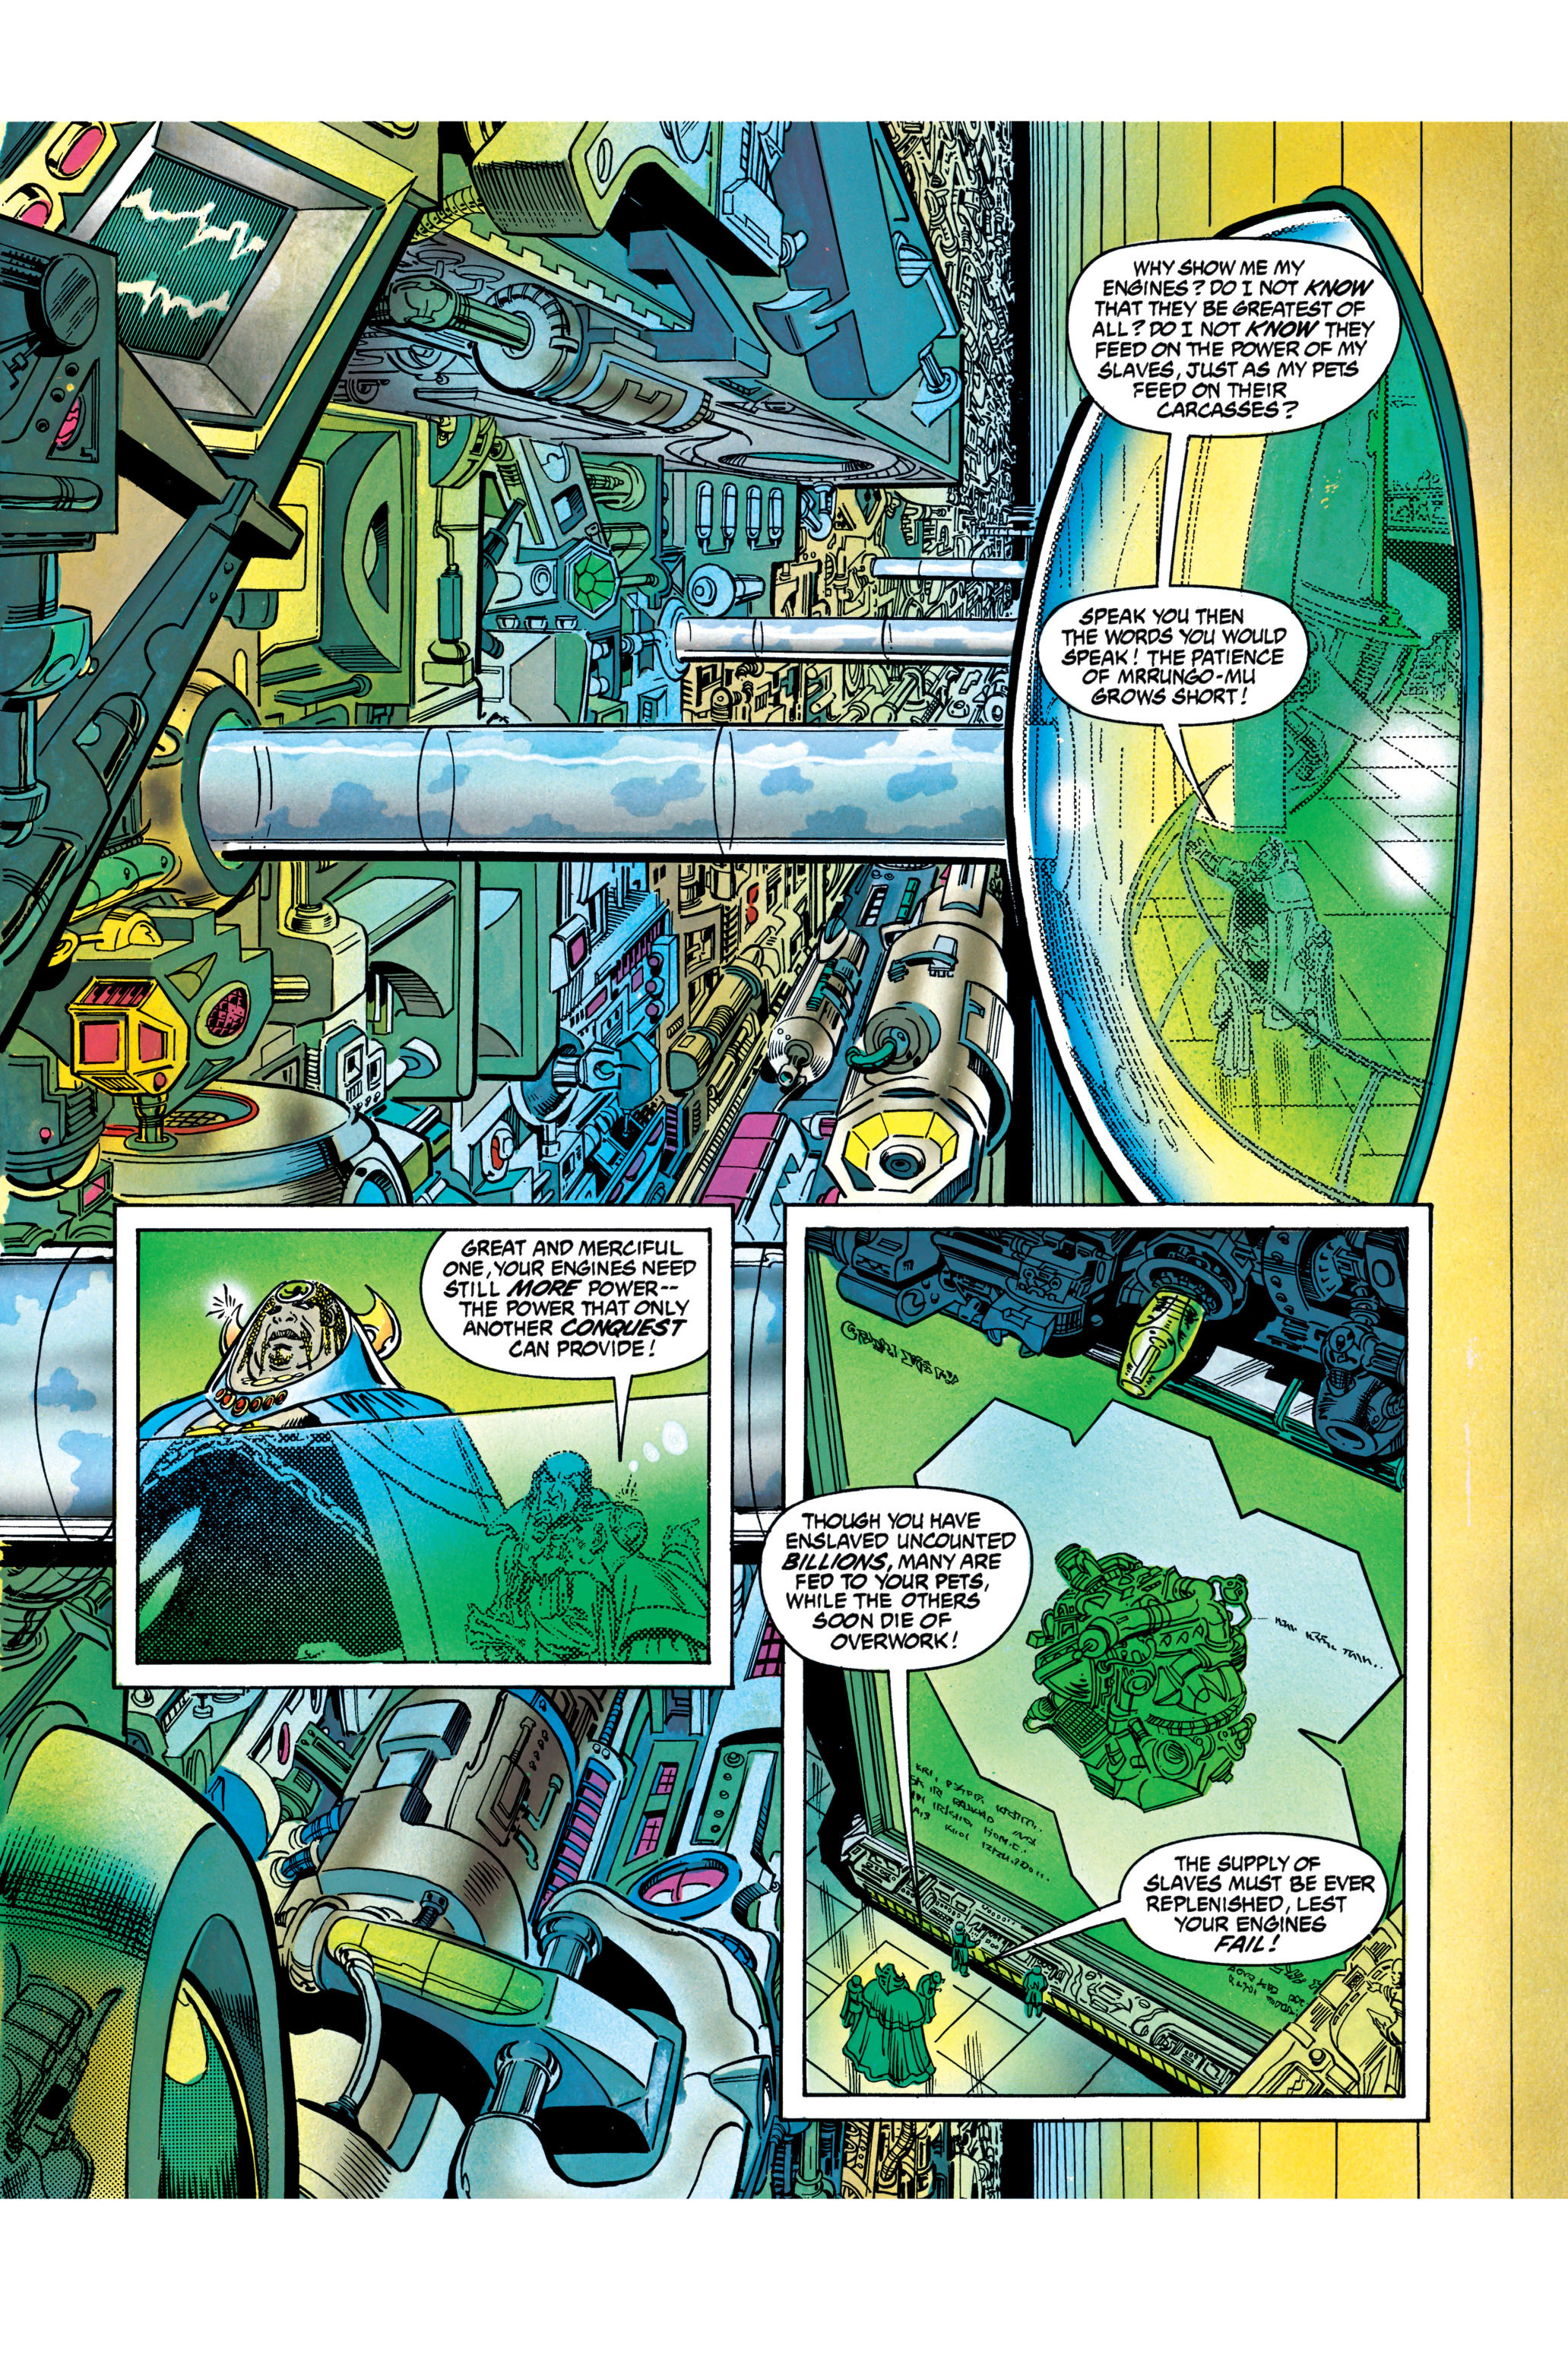 Read online Silver Surfer: Parable comic -  Issue # TPB - 86